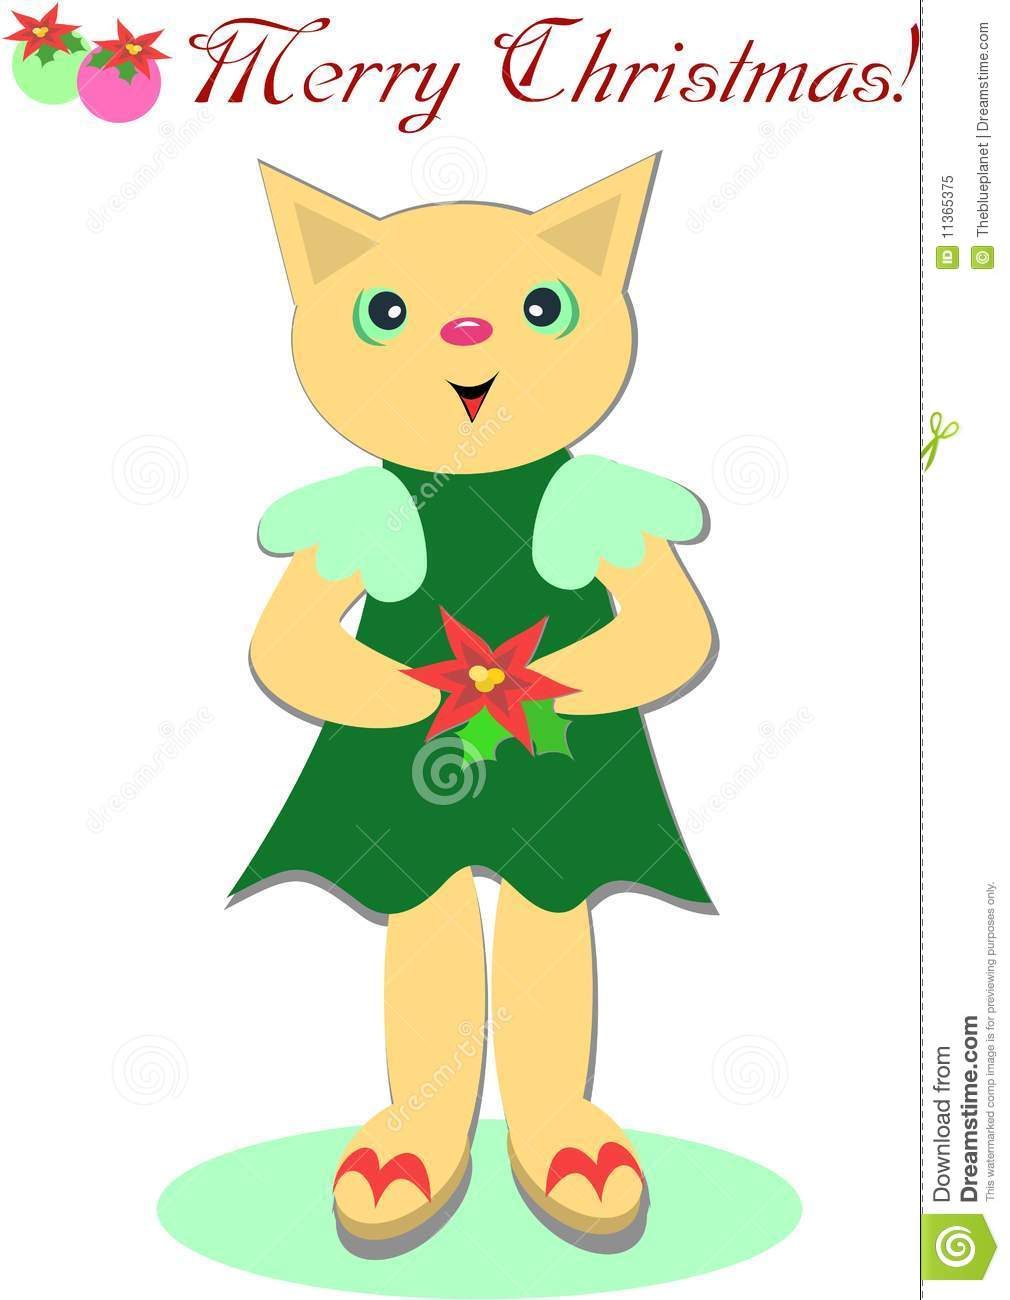 download cute merry christmas cat stock vector illustration of leaf 11365375 - Merry Christmas Cat